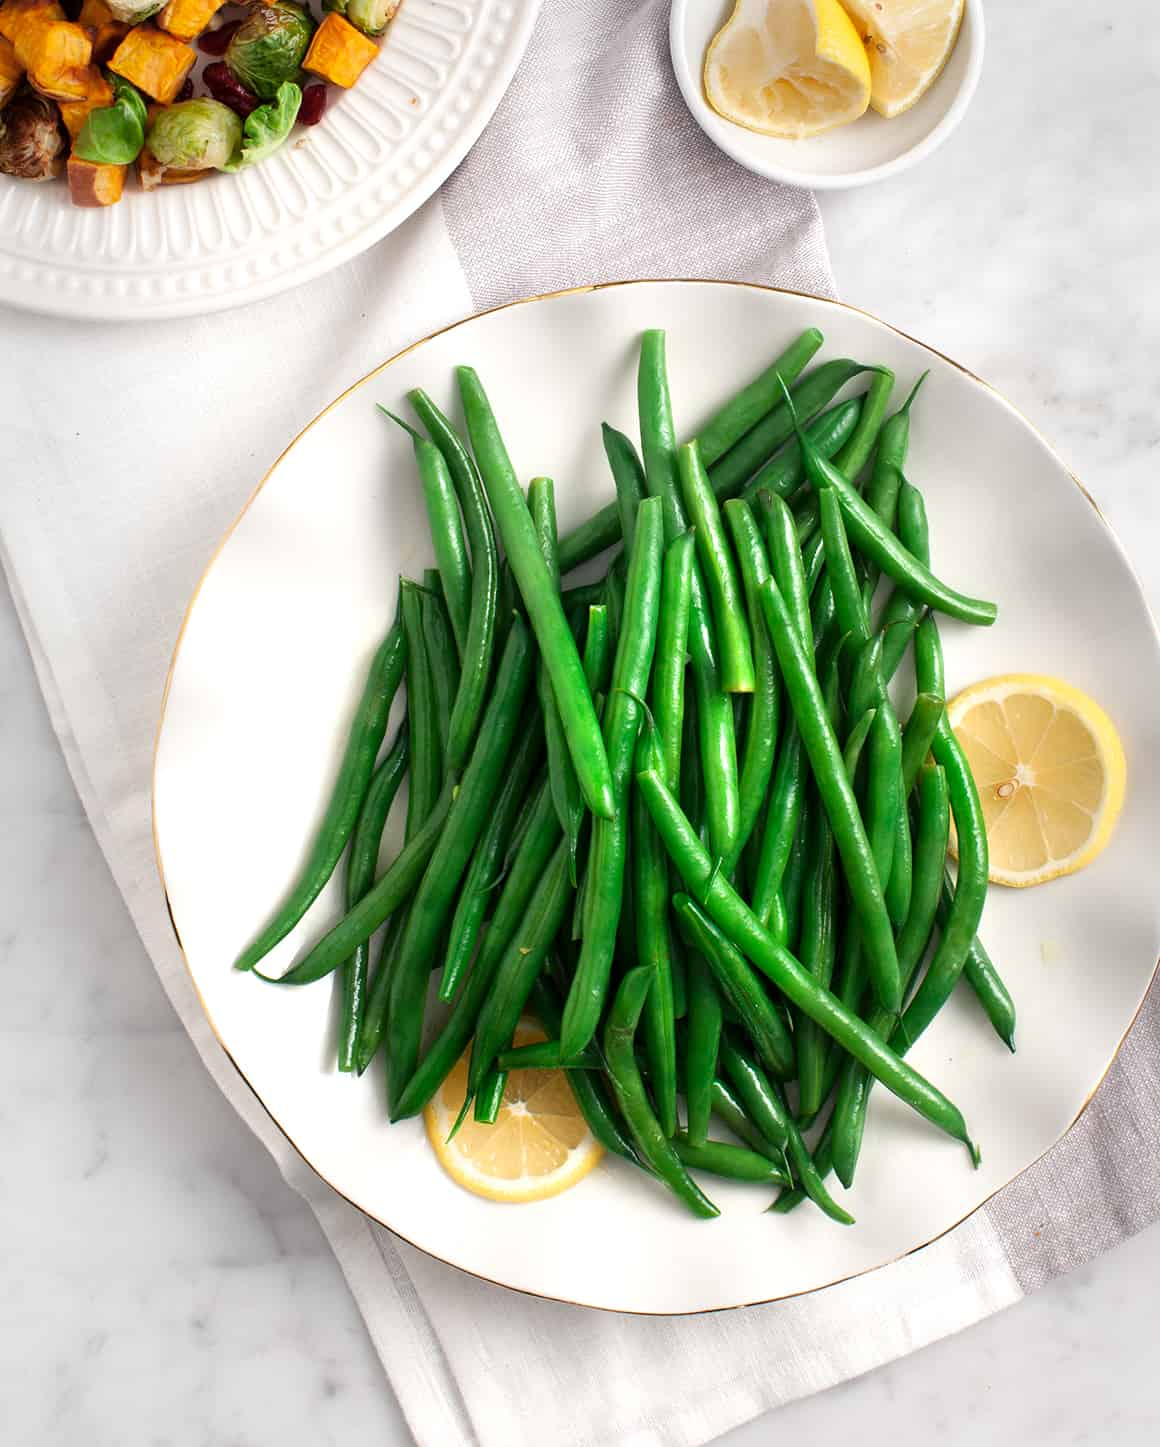 Simple Lemon Green Beans on a plate with lemon slices